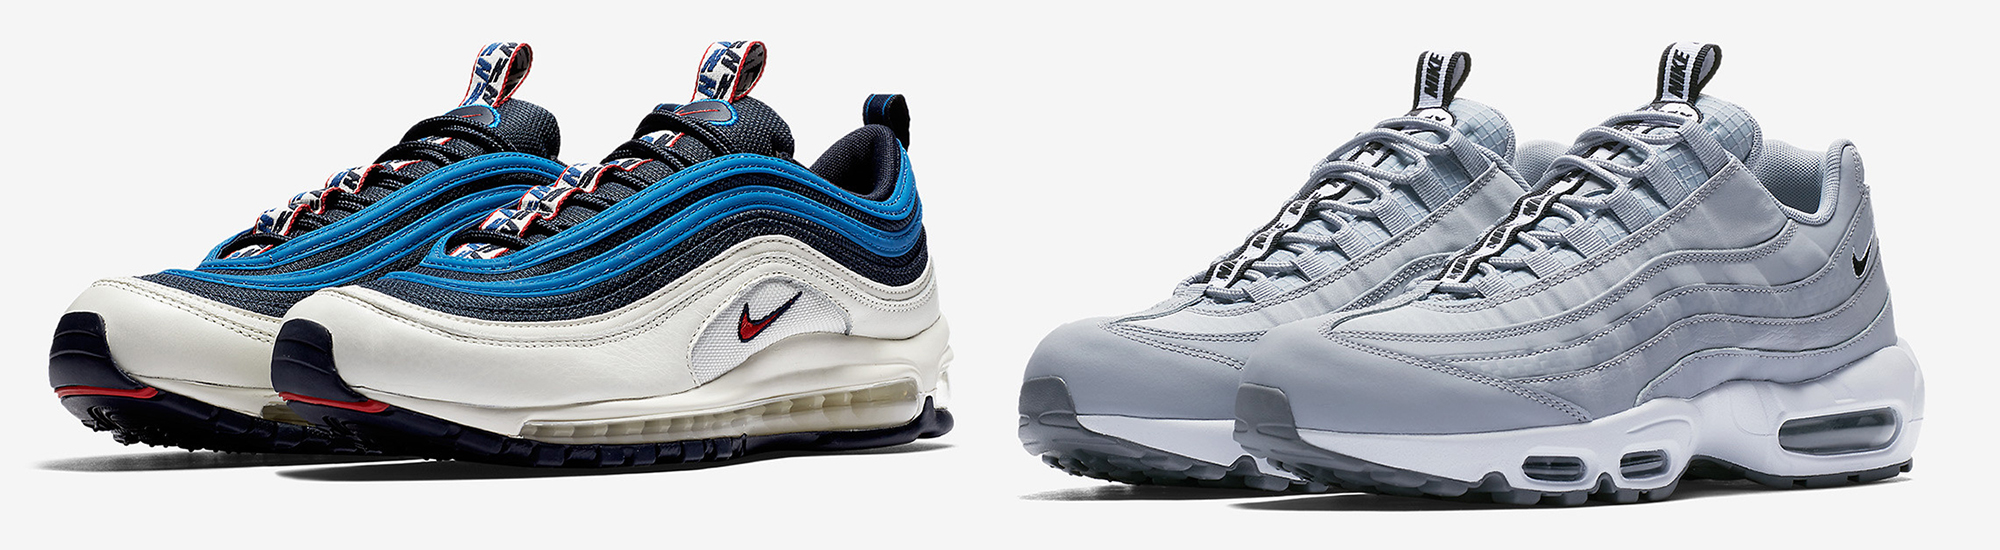 hot sale online 899a4 e3c3d Time For Round Two of the Nike Air Max Pull Tab Pack - The ...